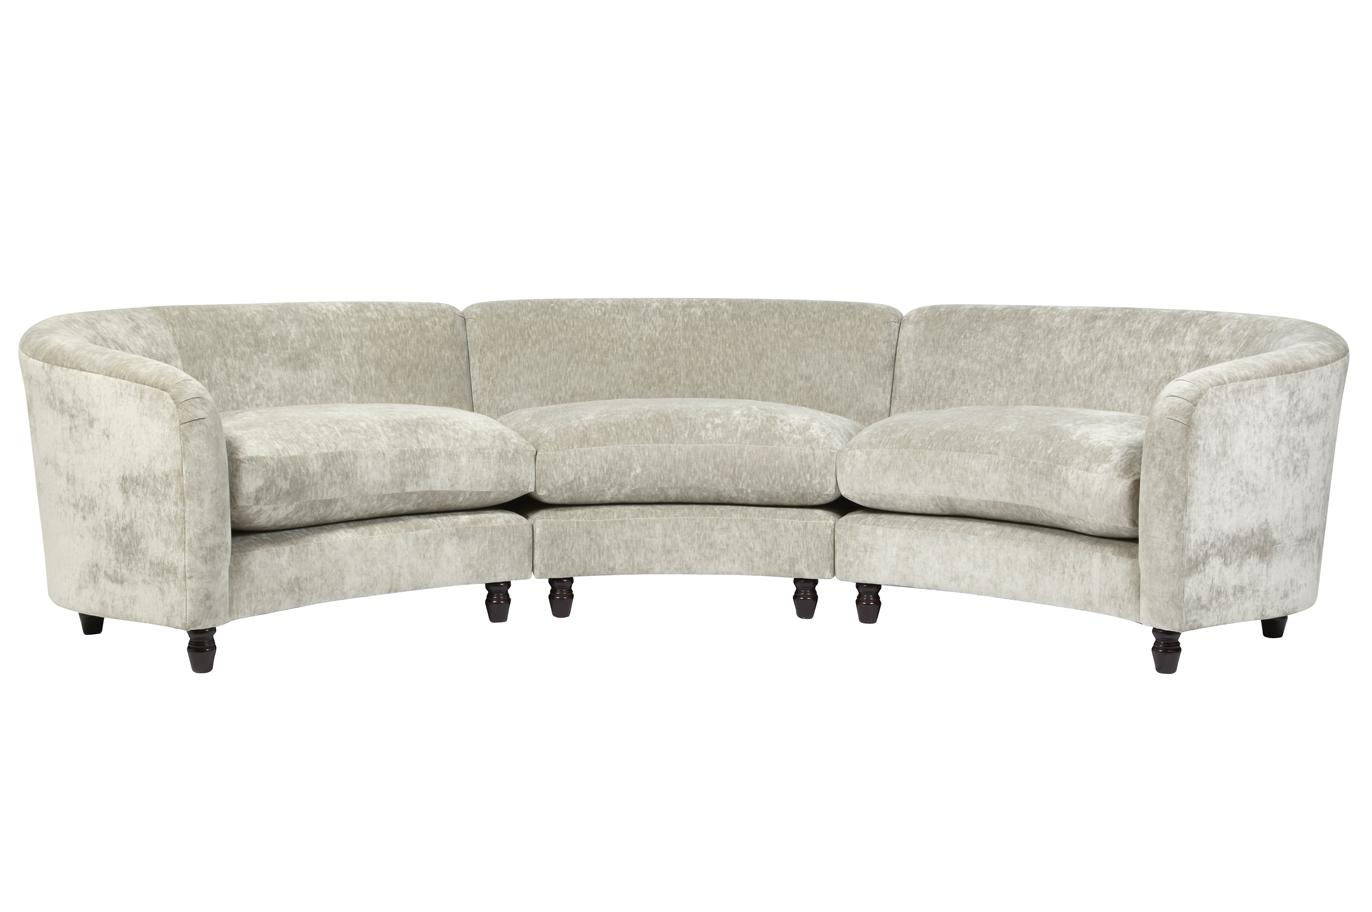 curved sectional sofa leather box acnl customized laura ashley small enlargeimage1367752430 jpg thesofa